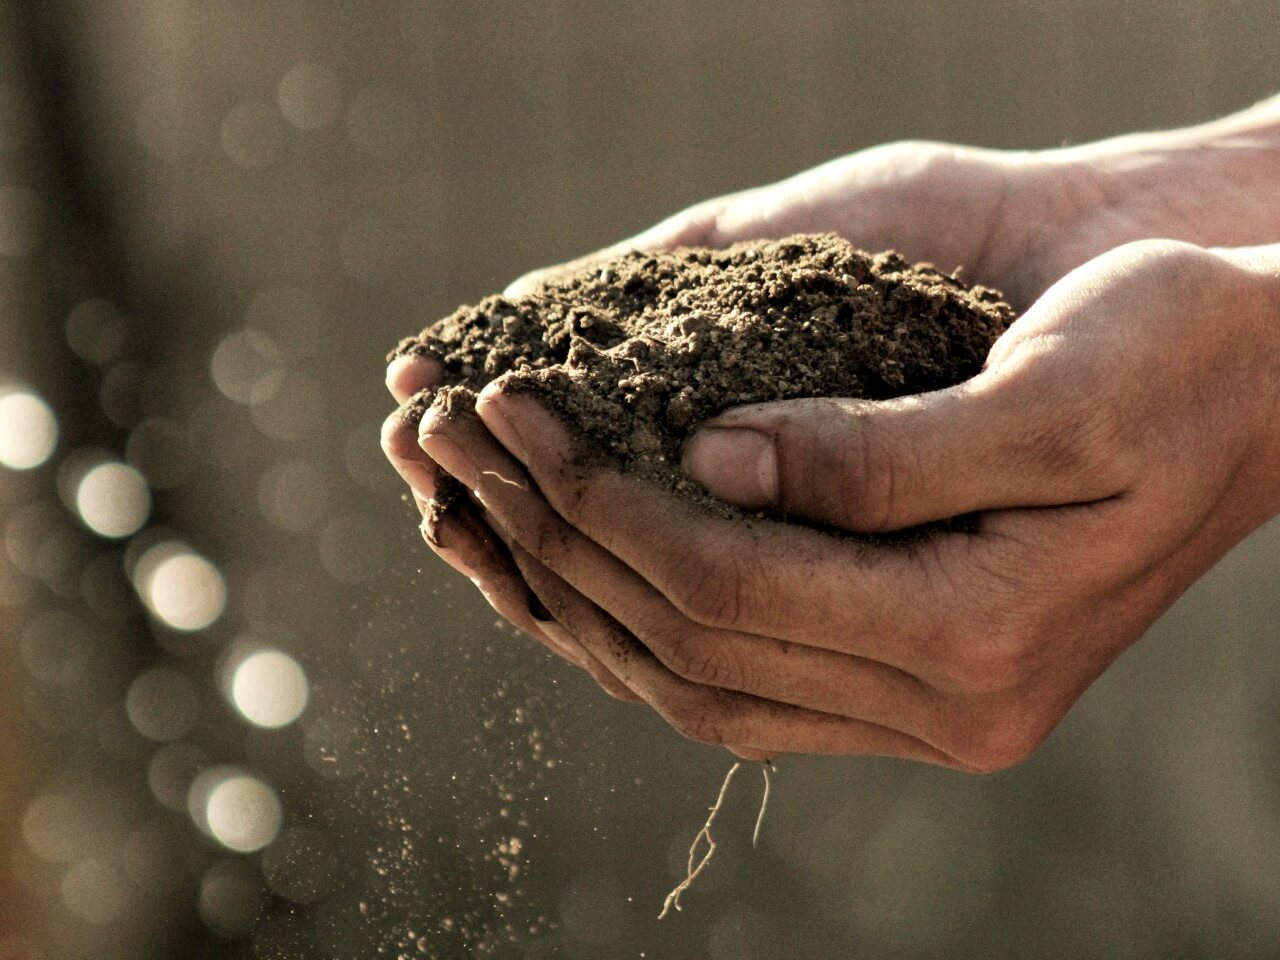 Hands holding a pile of dirt to show soil-based probiotics